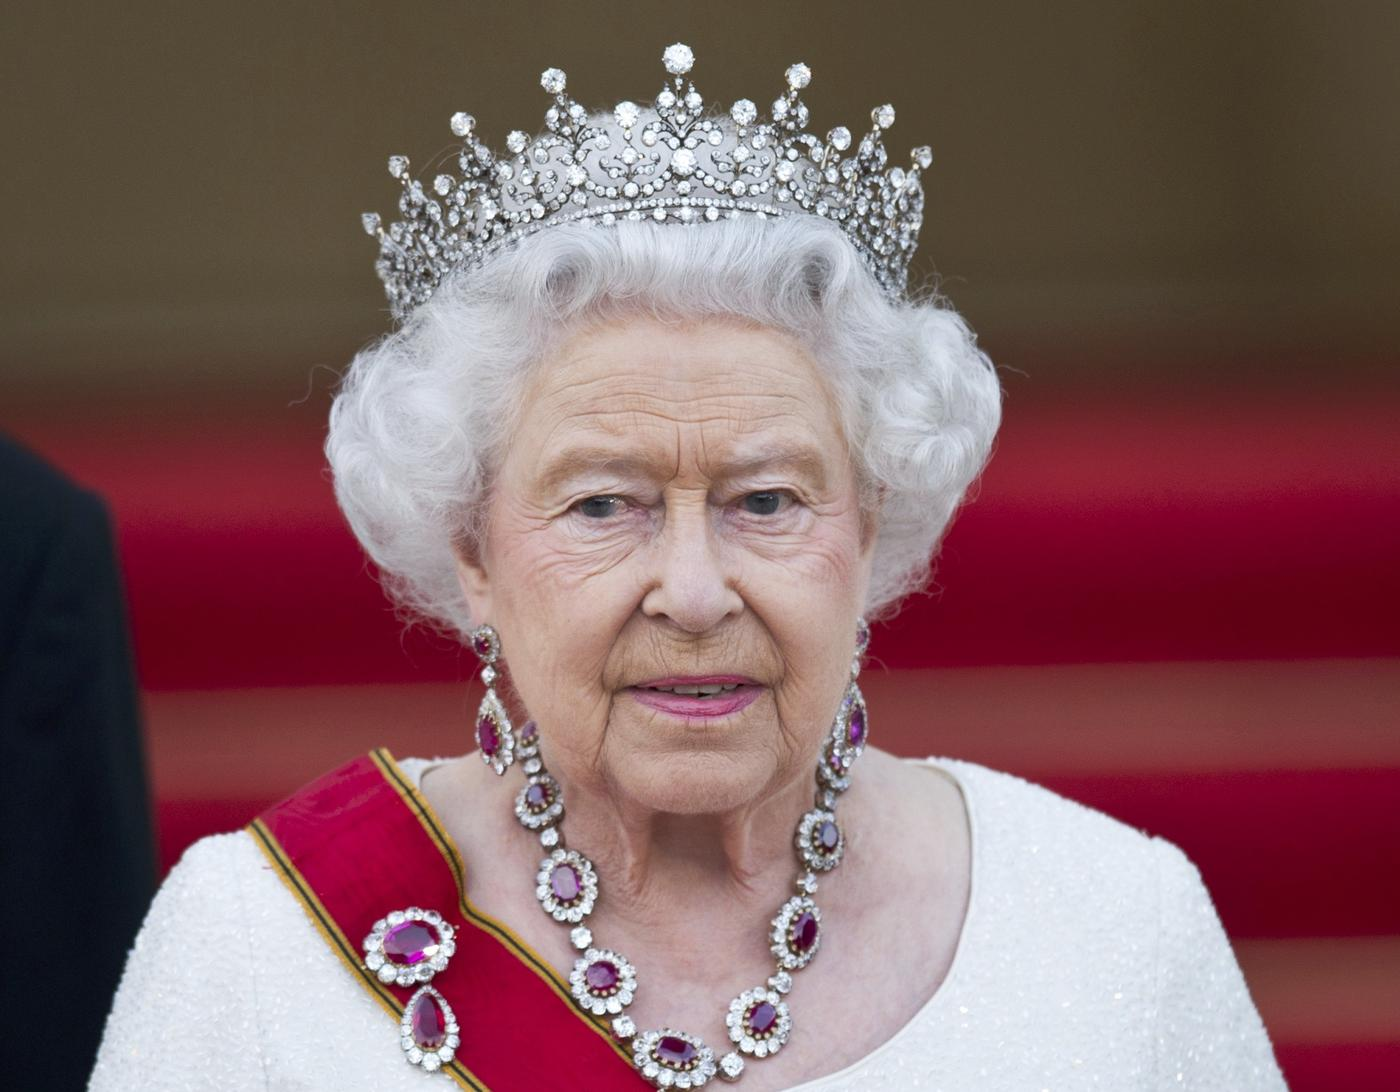 The Queen 'wants Britain to stay in the EU'